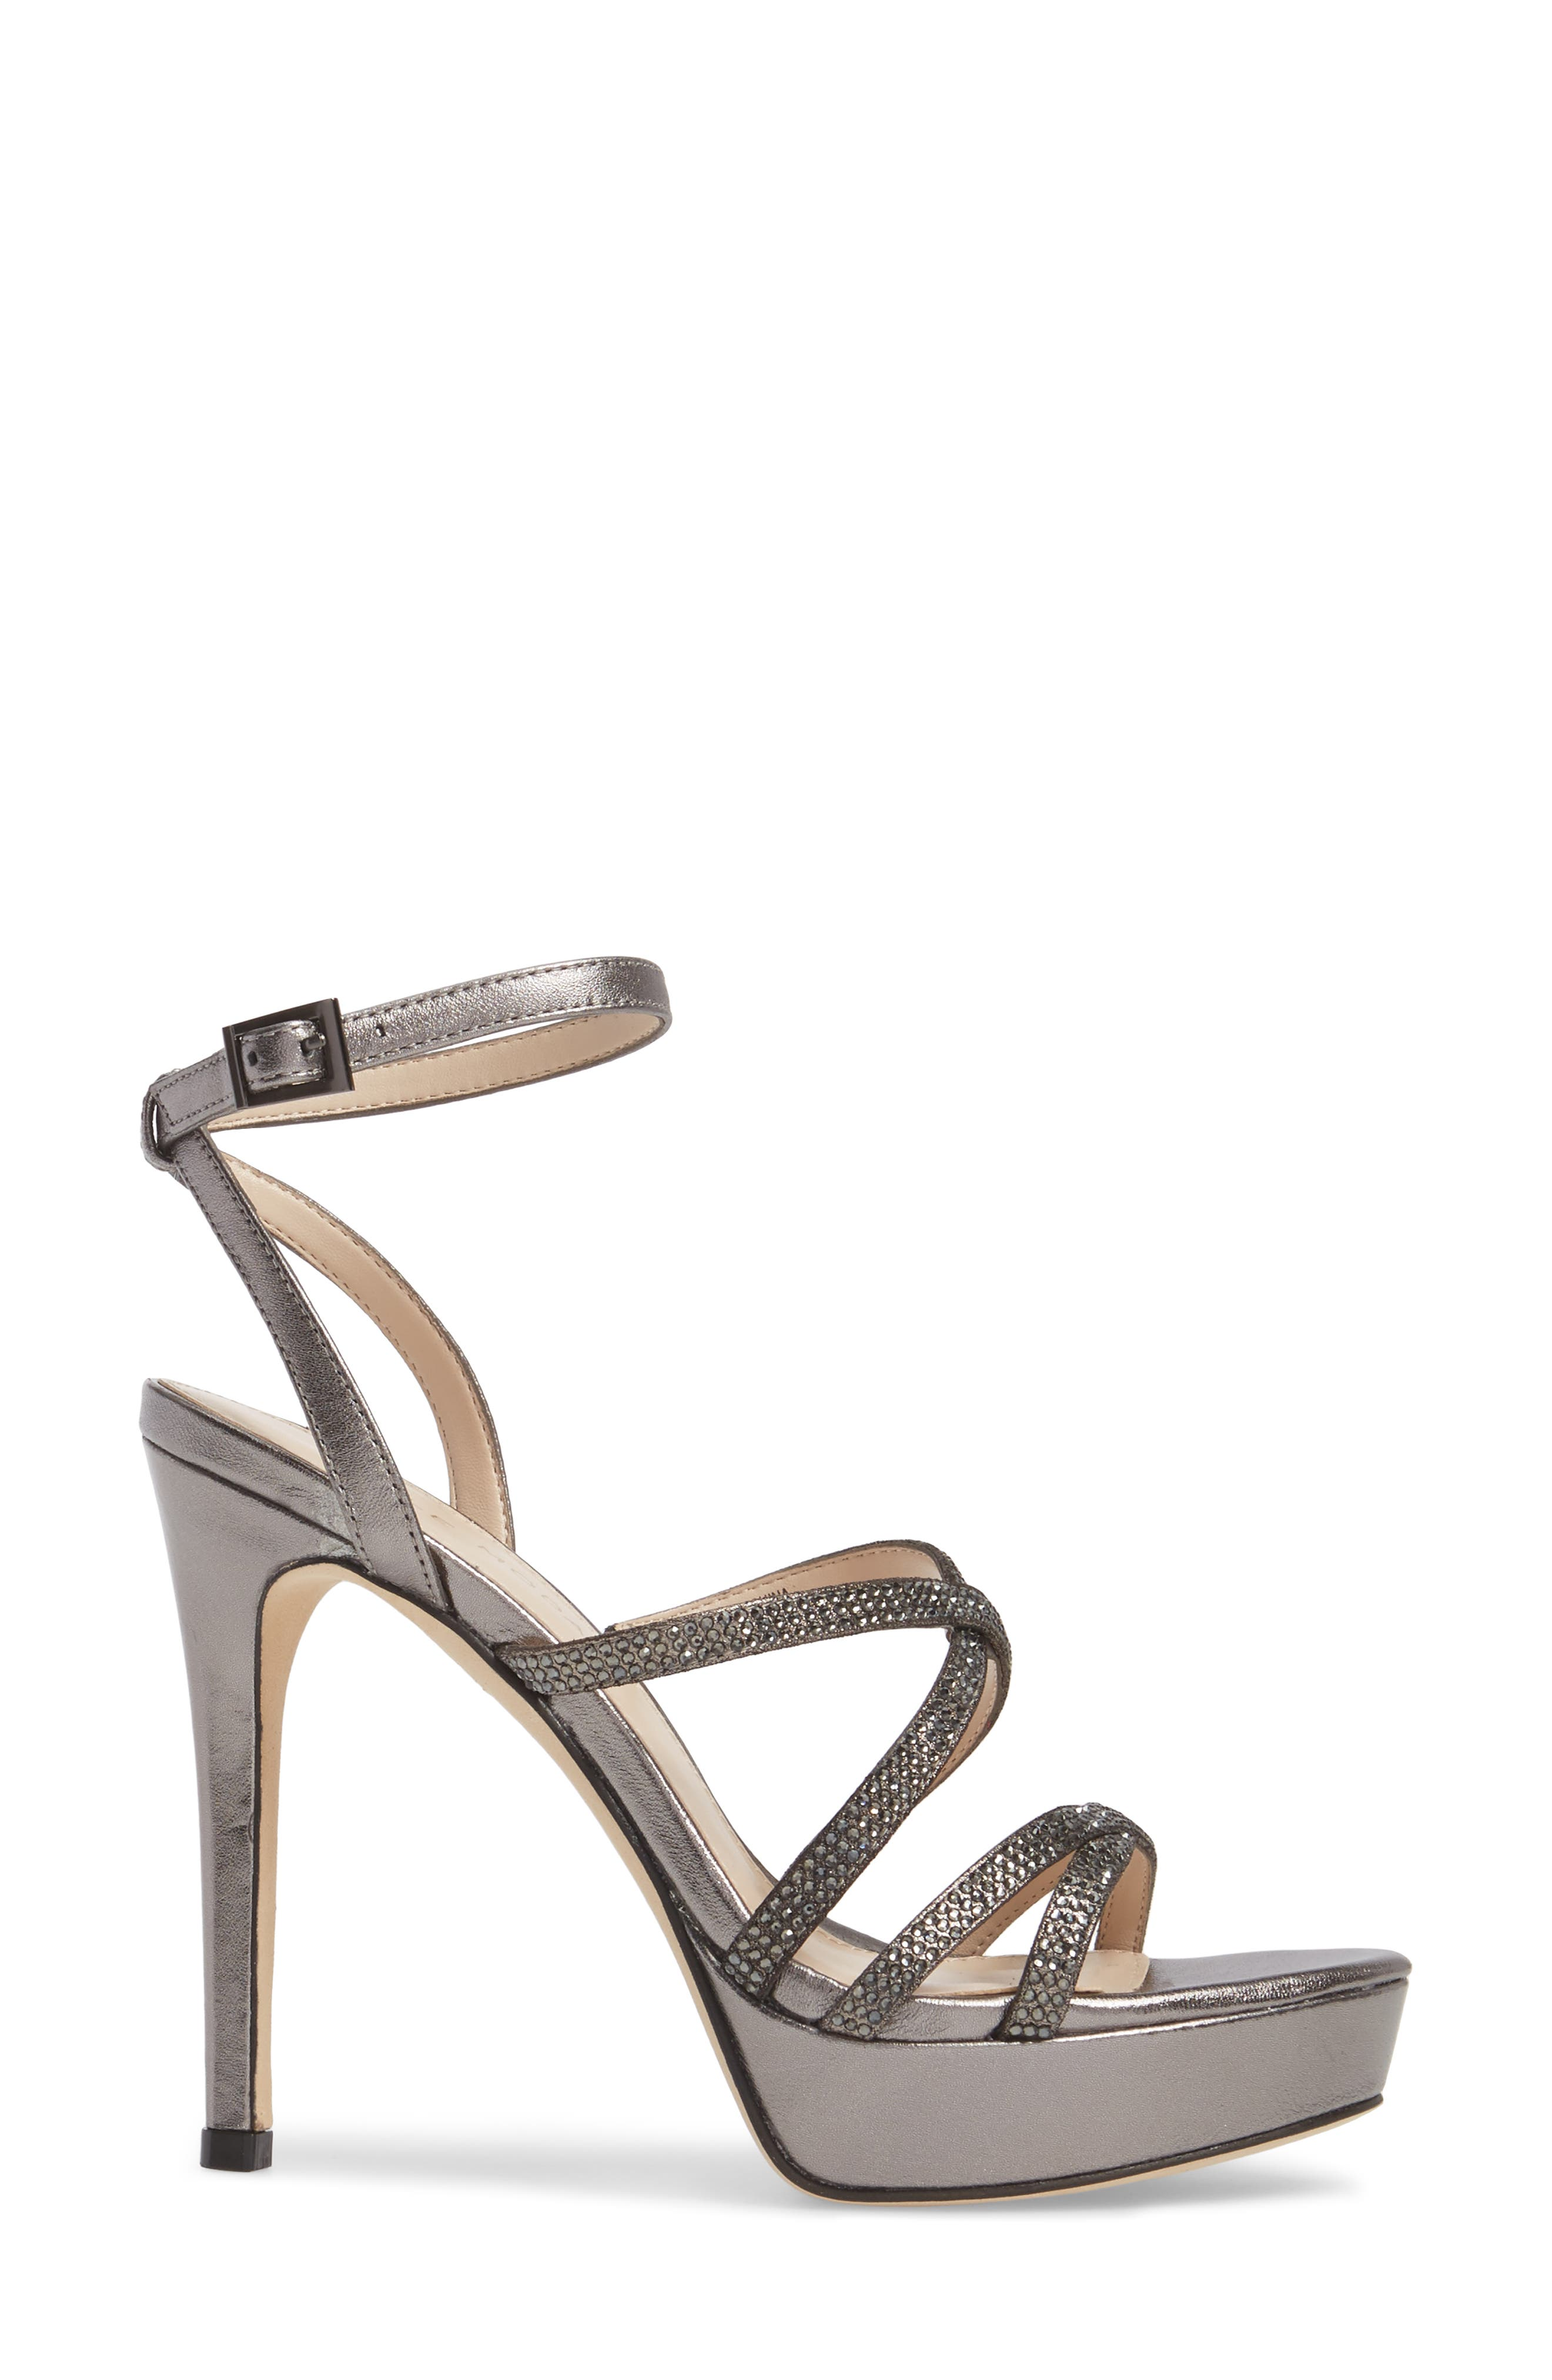 Oak Platform Sandal,                             Alternate thumbnail 3, color,                             Pewter Metallic Suede